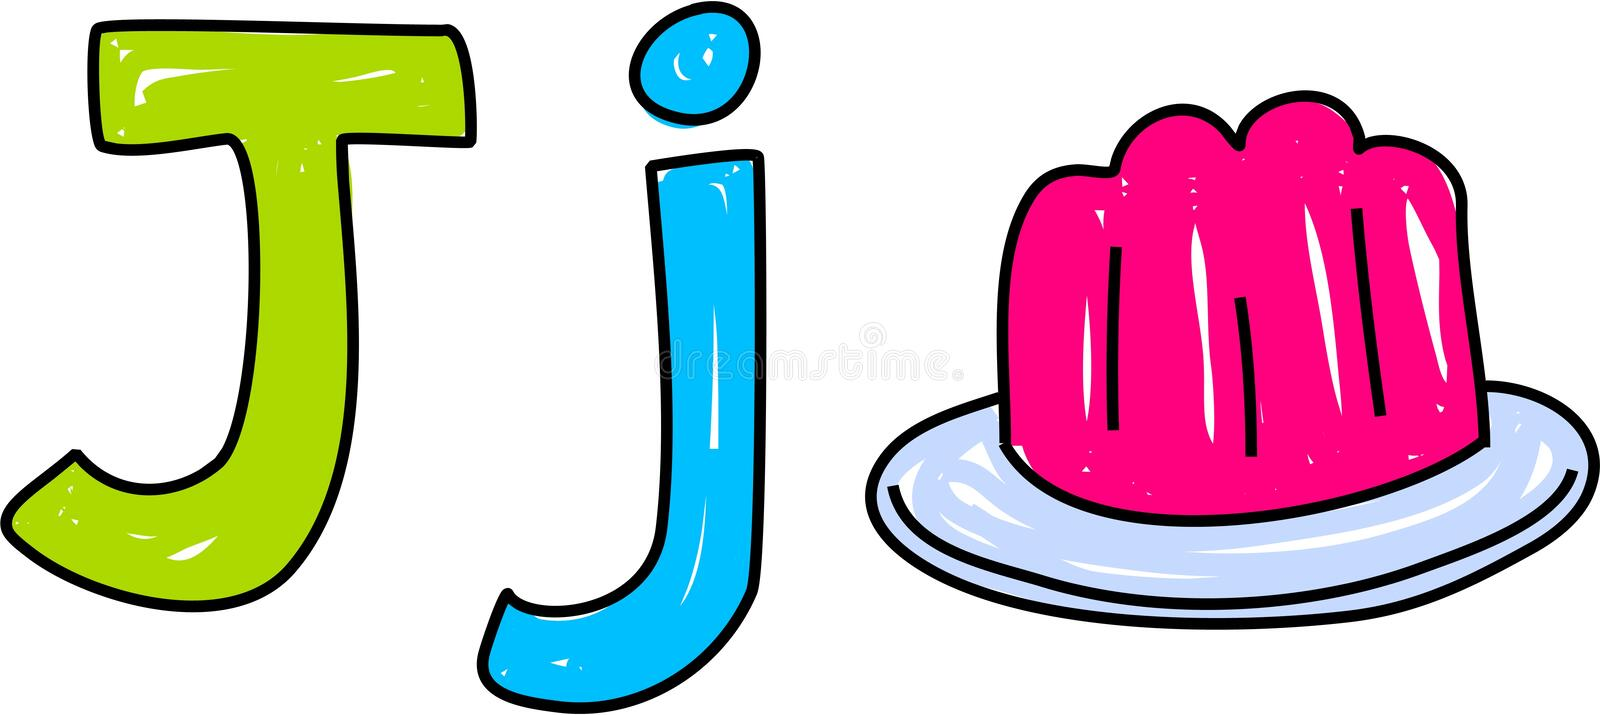 J is for jelly royalty free illustration